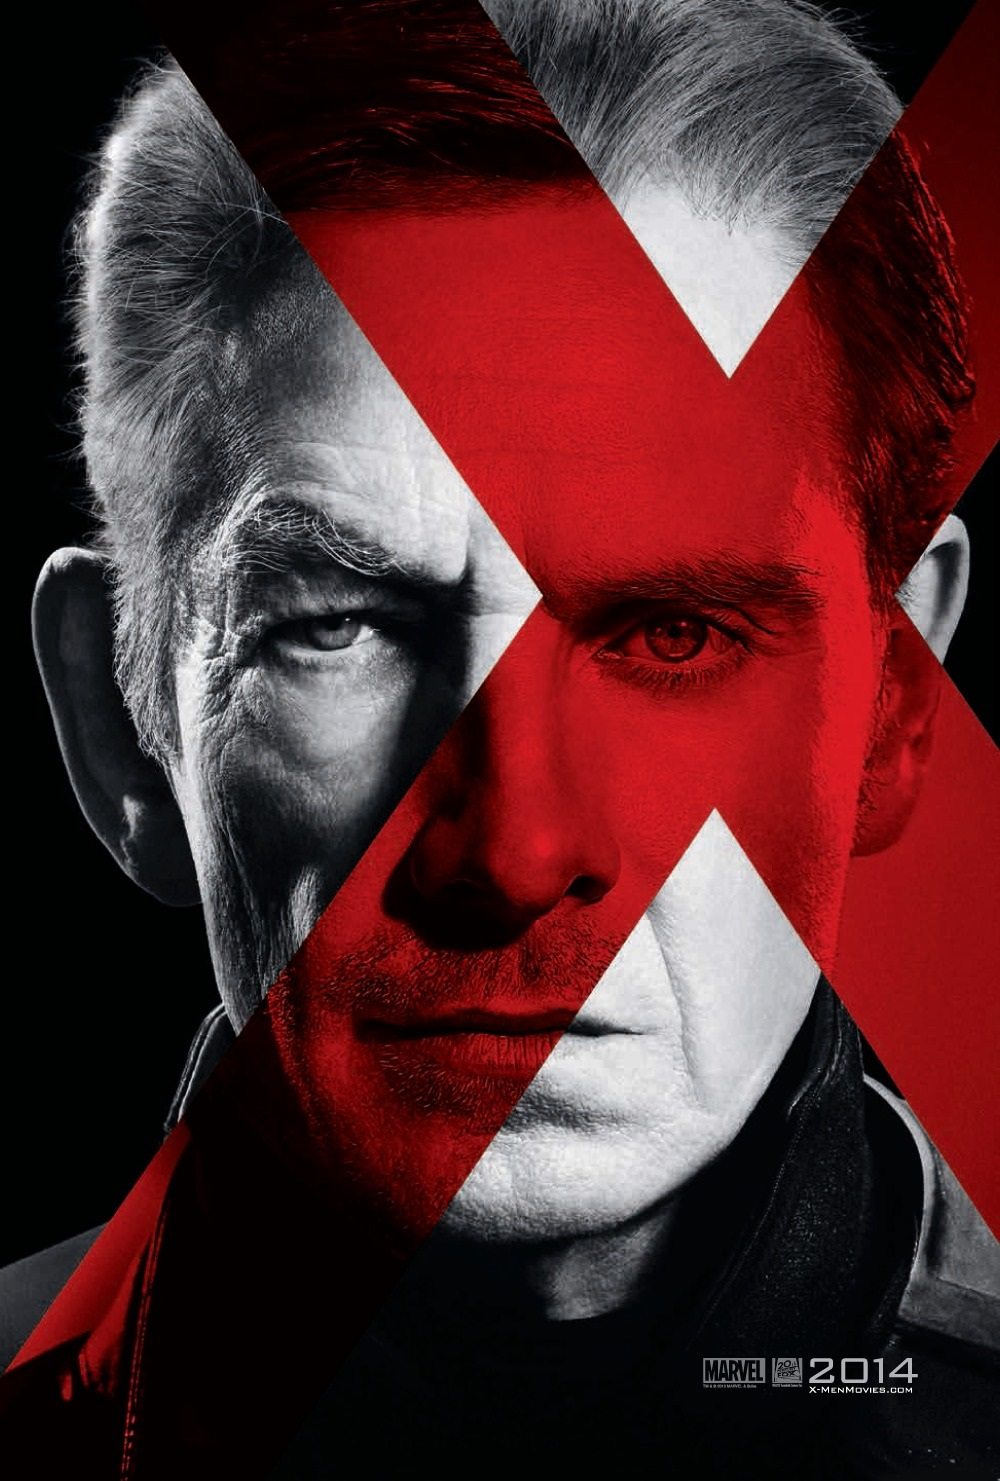 X-Men: Days of Future Past gets two amazing mash-up posters